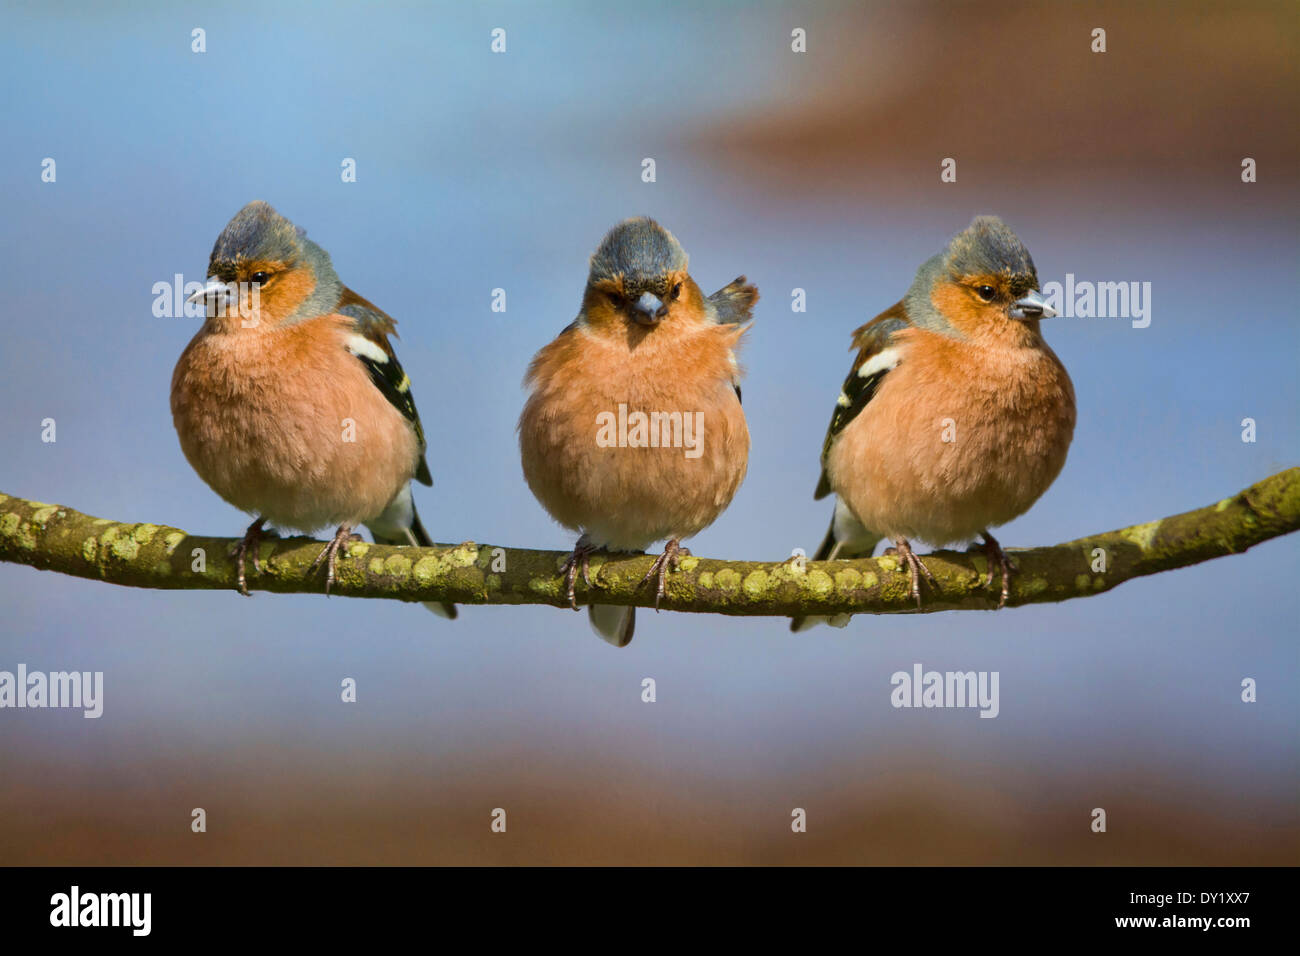 Three Chaffinches - Stock Image